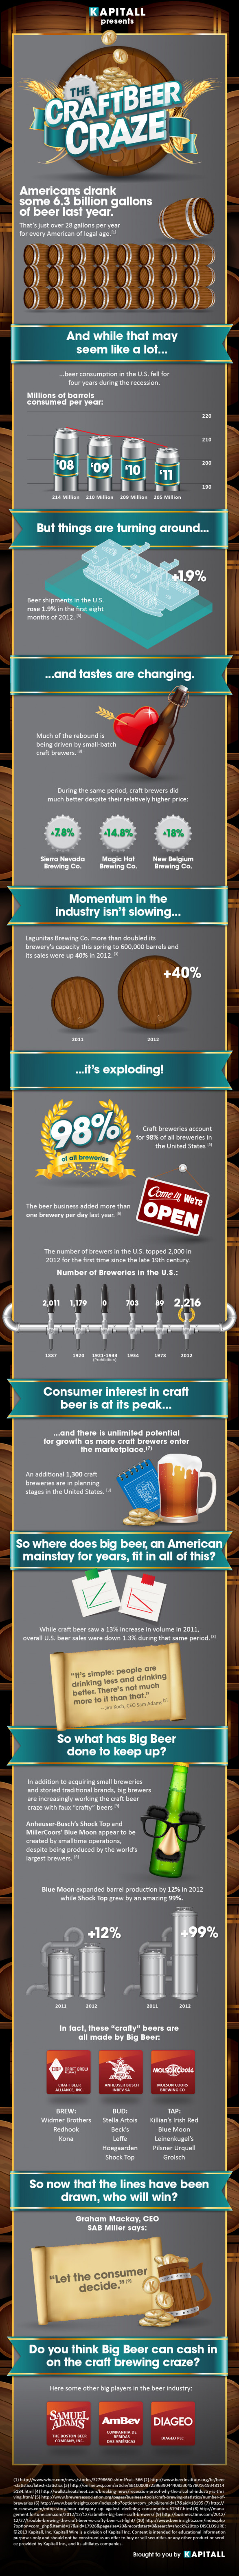 The Craft Beer Craze